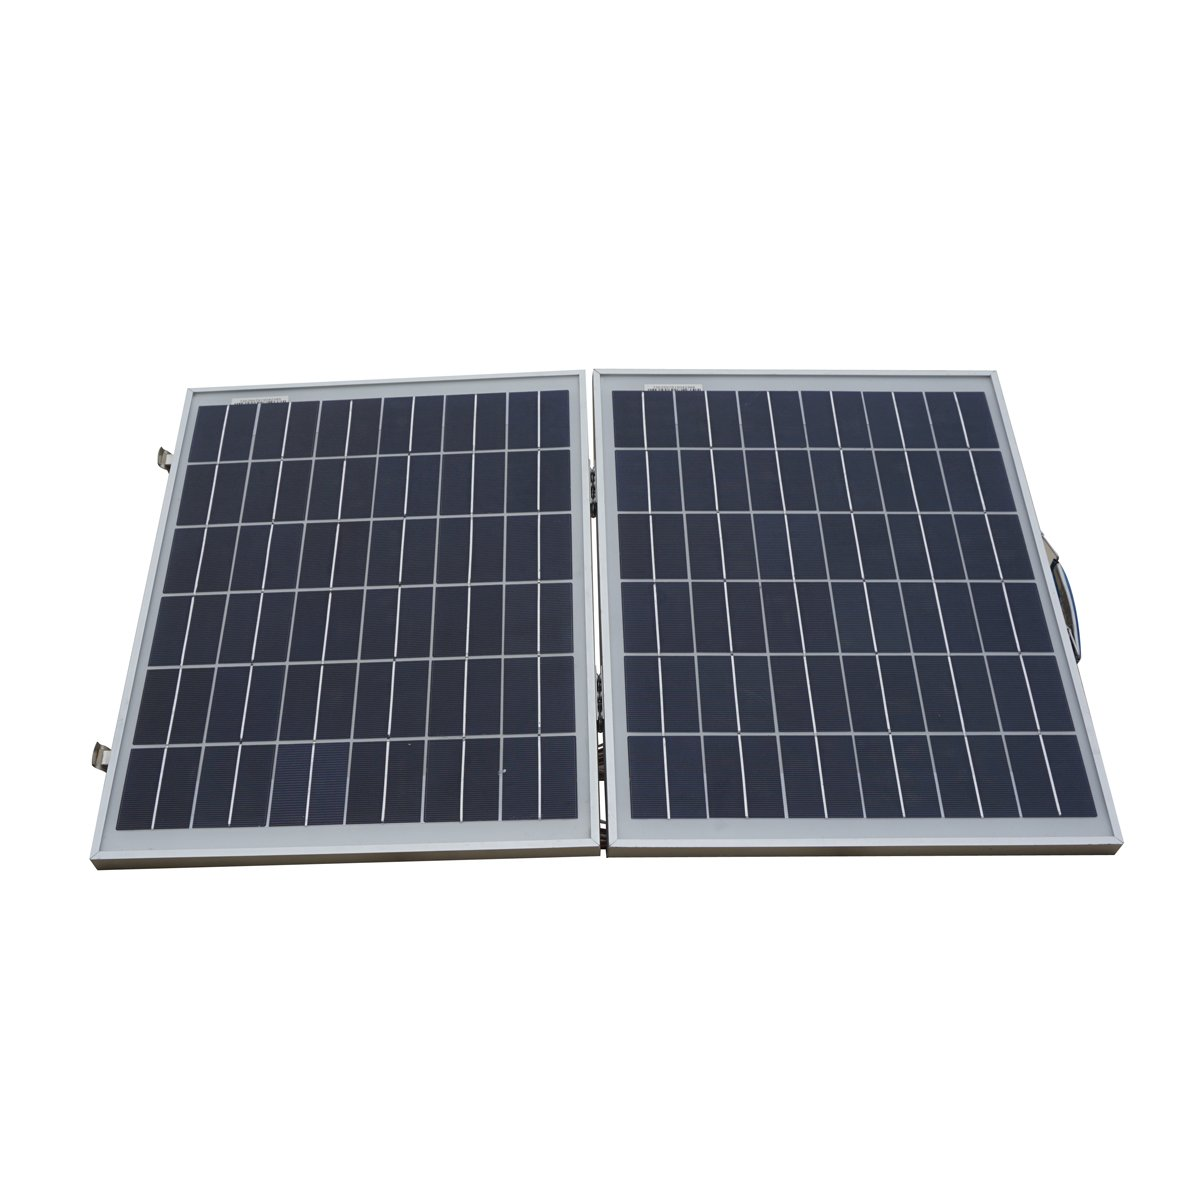 ECO LLC 50W 12V Portable Folding Solar Panel for Home Outdoor Camping Hiking Car RV Boat